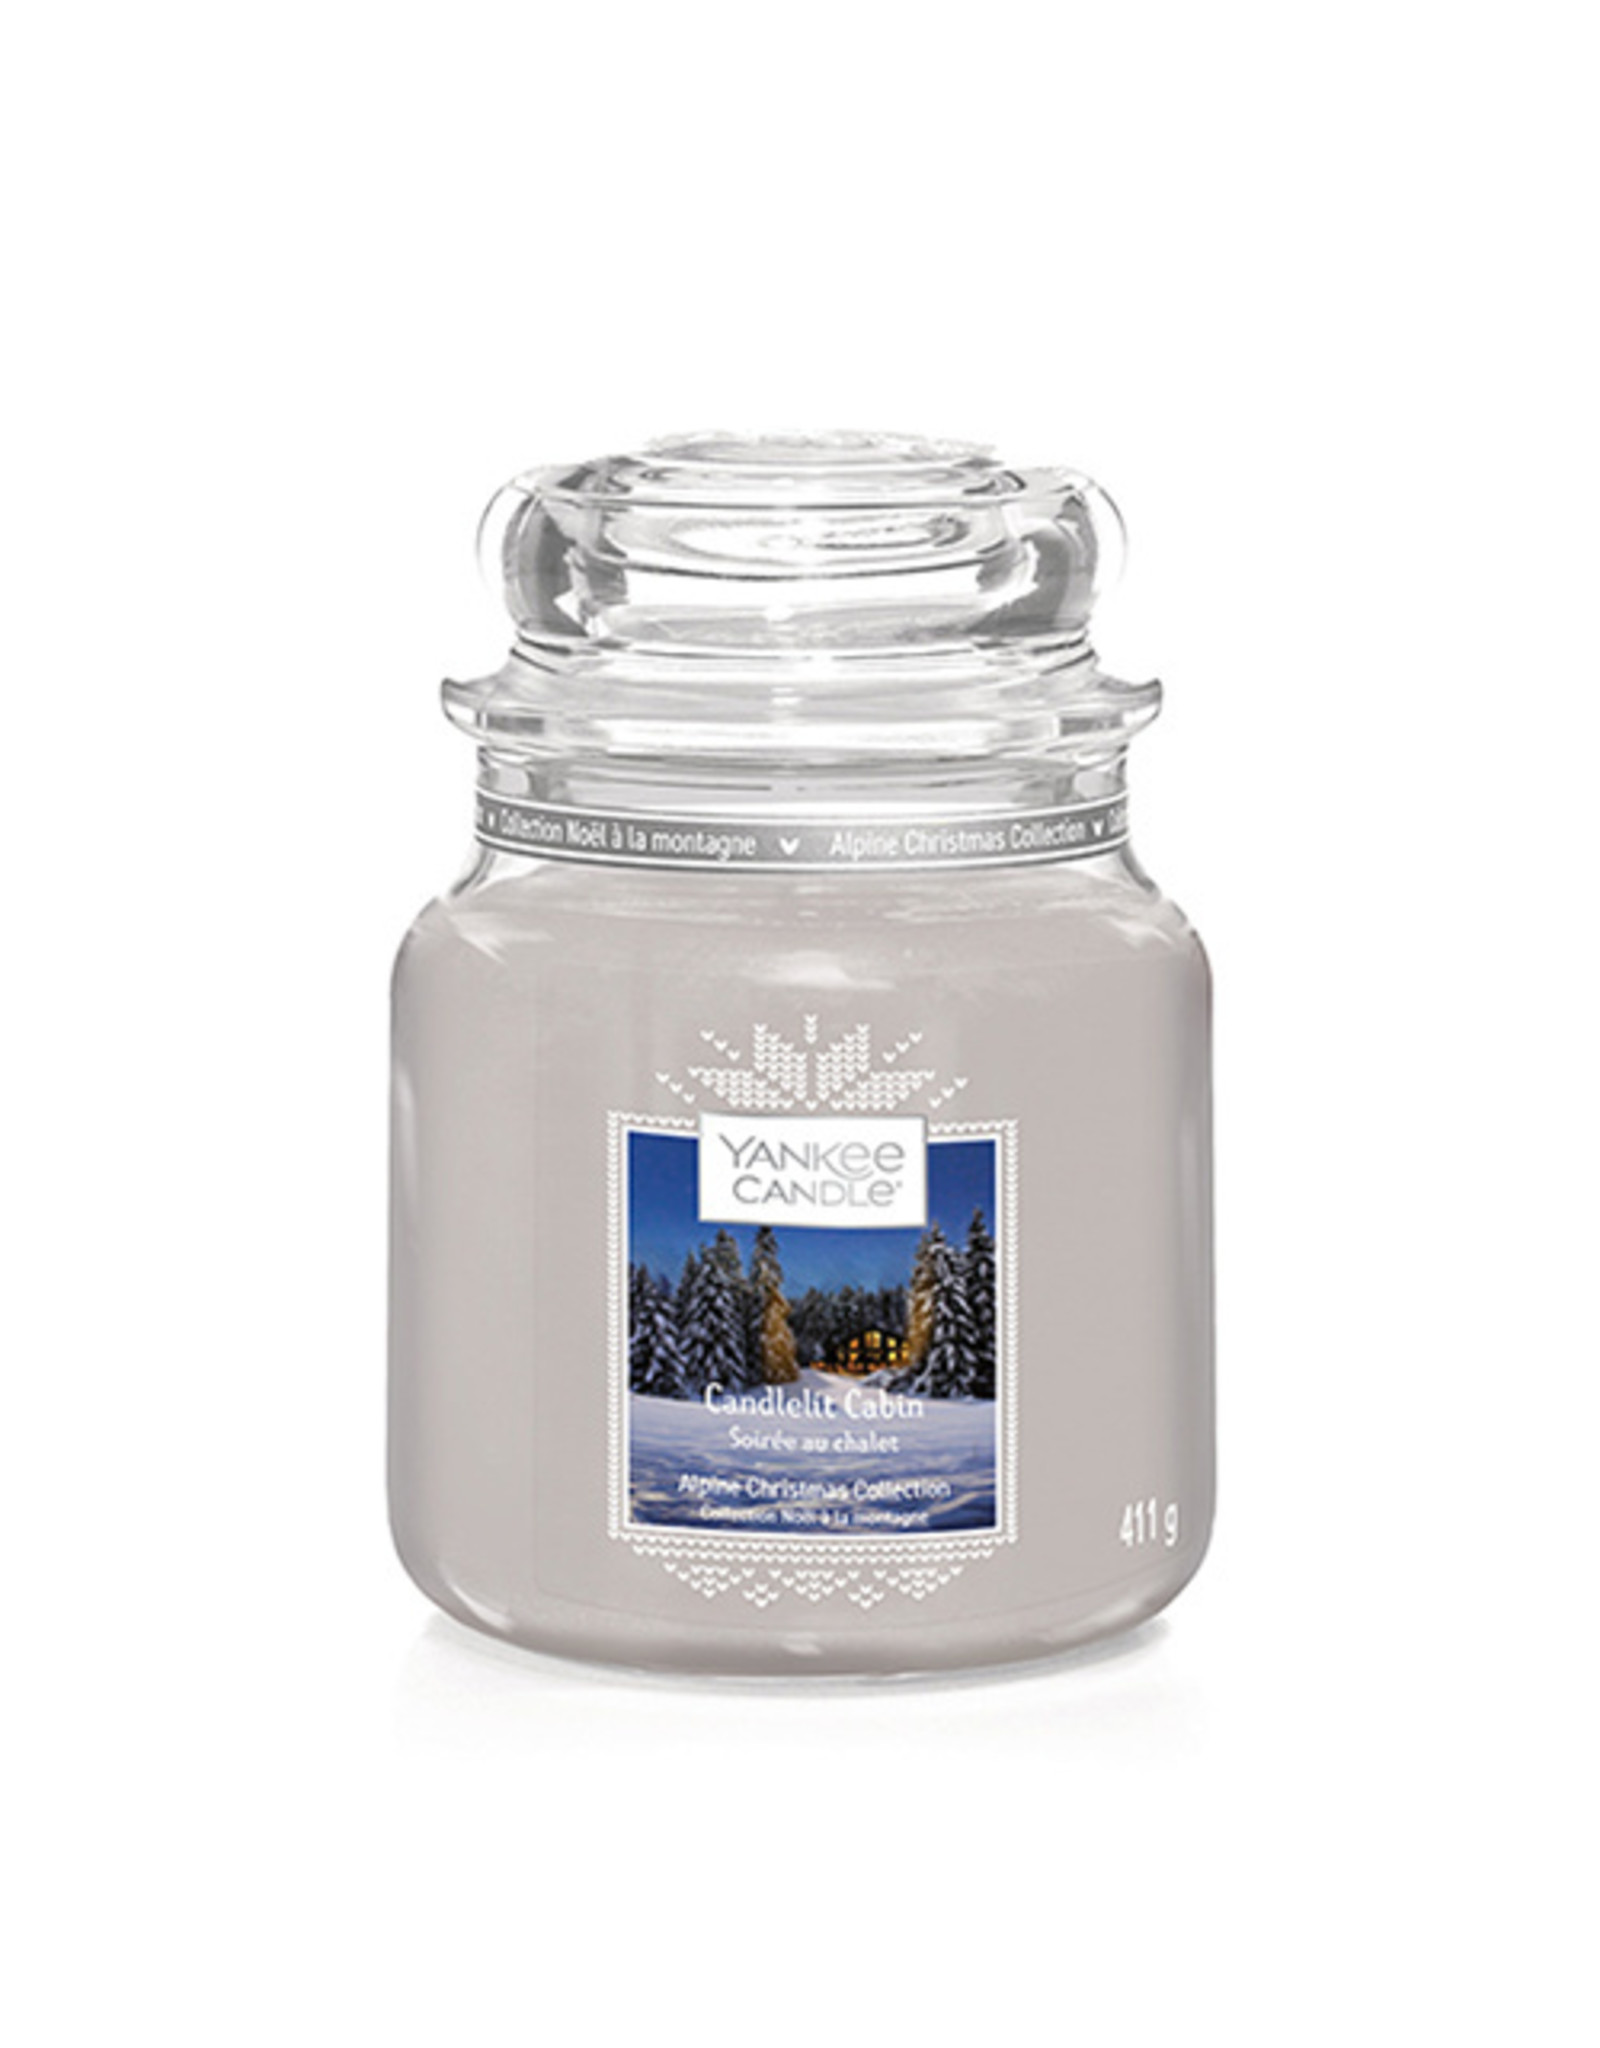 Yankee Candle Candlelit Cabin Medium Jar